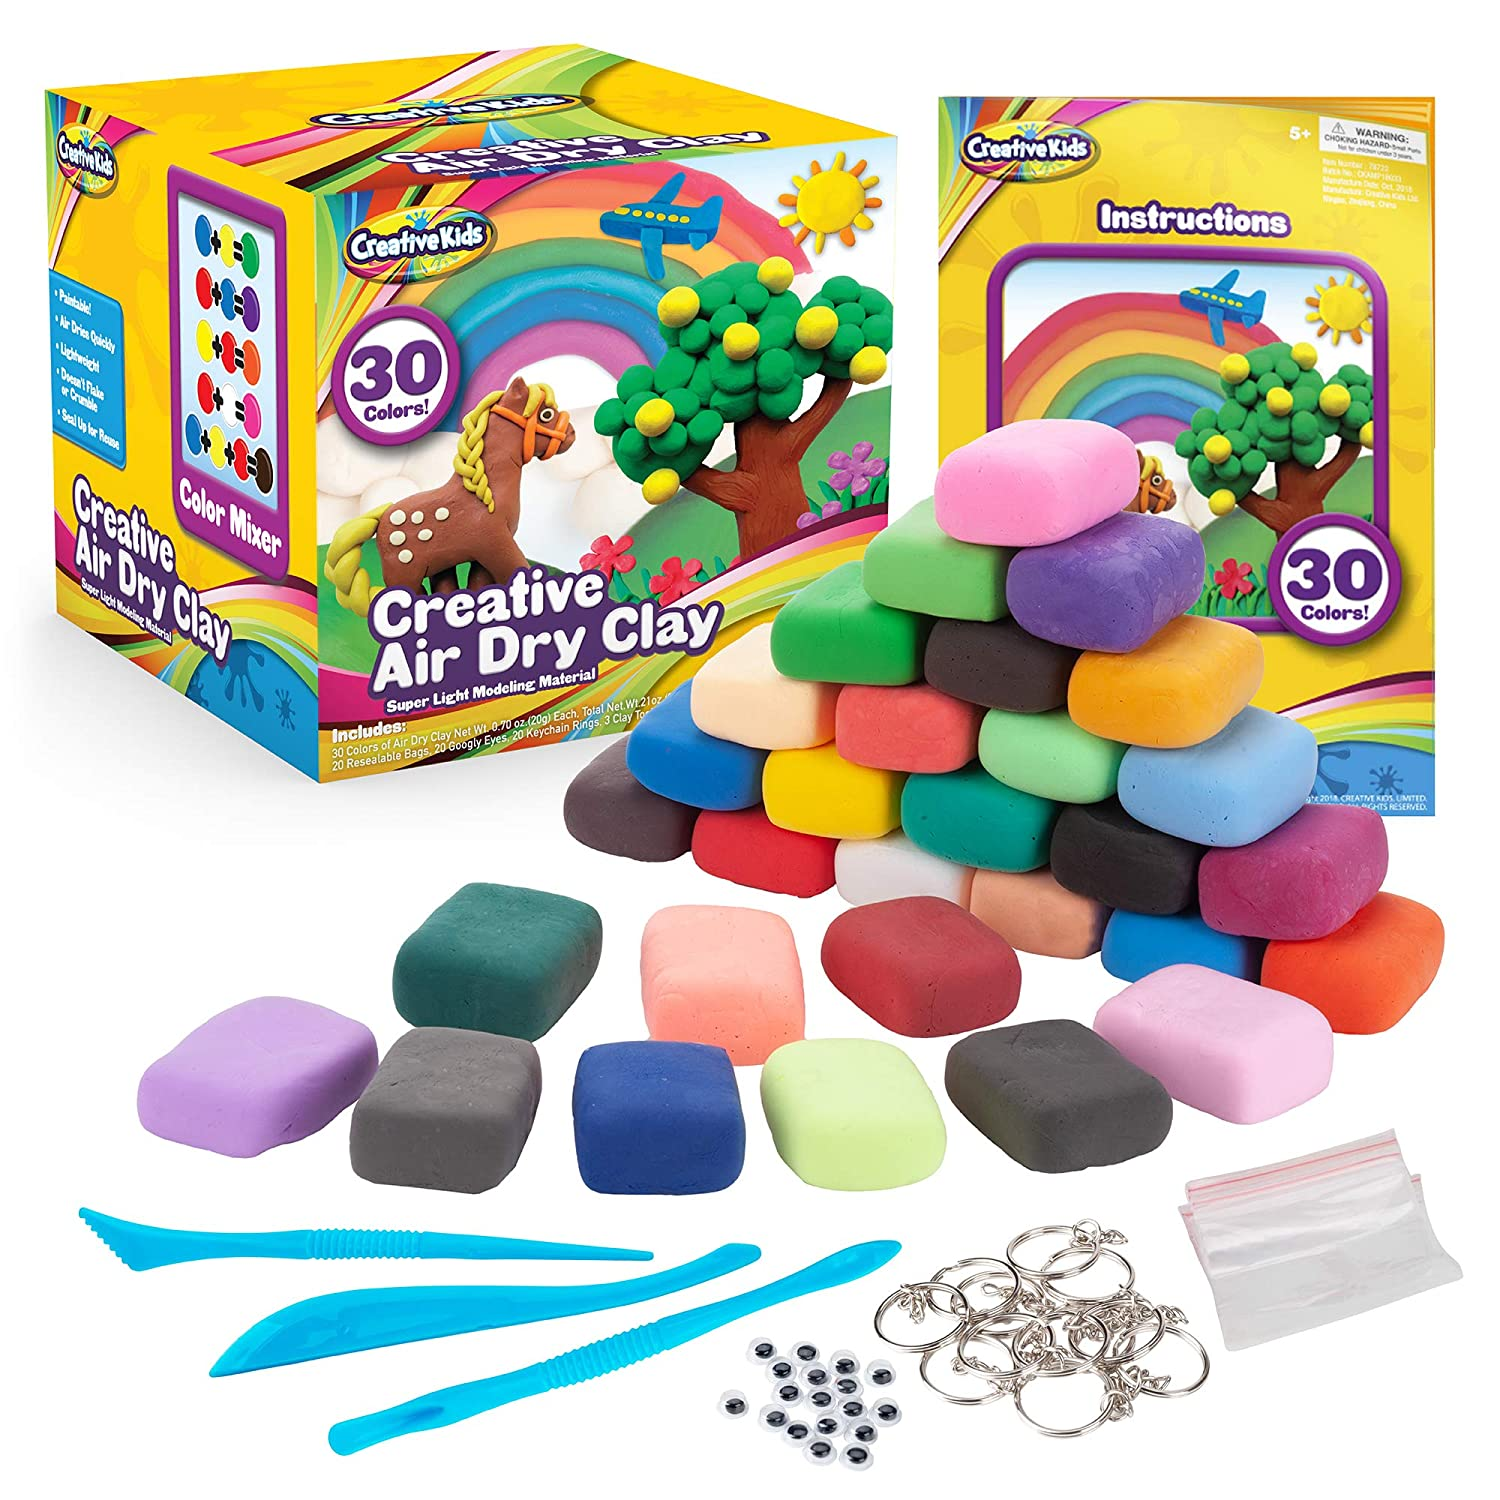 58aa2b253 Creative Kids Air Dry Clay Modeling Crafts Kit For Children - Super Light  Nontoxic - 30 Vibrant Colors & 3 Clay Tools - STEM Educational DIY Molding  Set ...